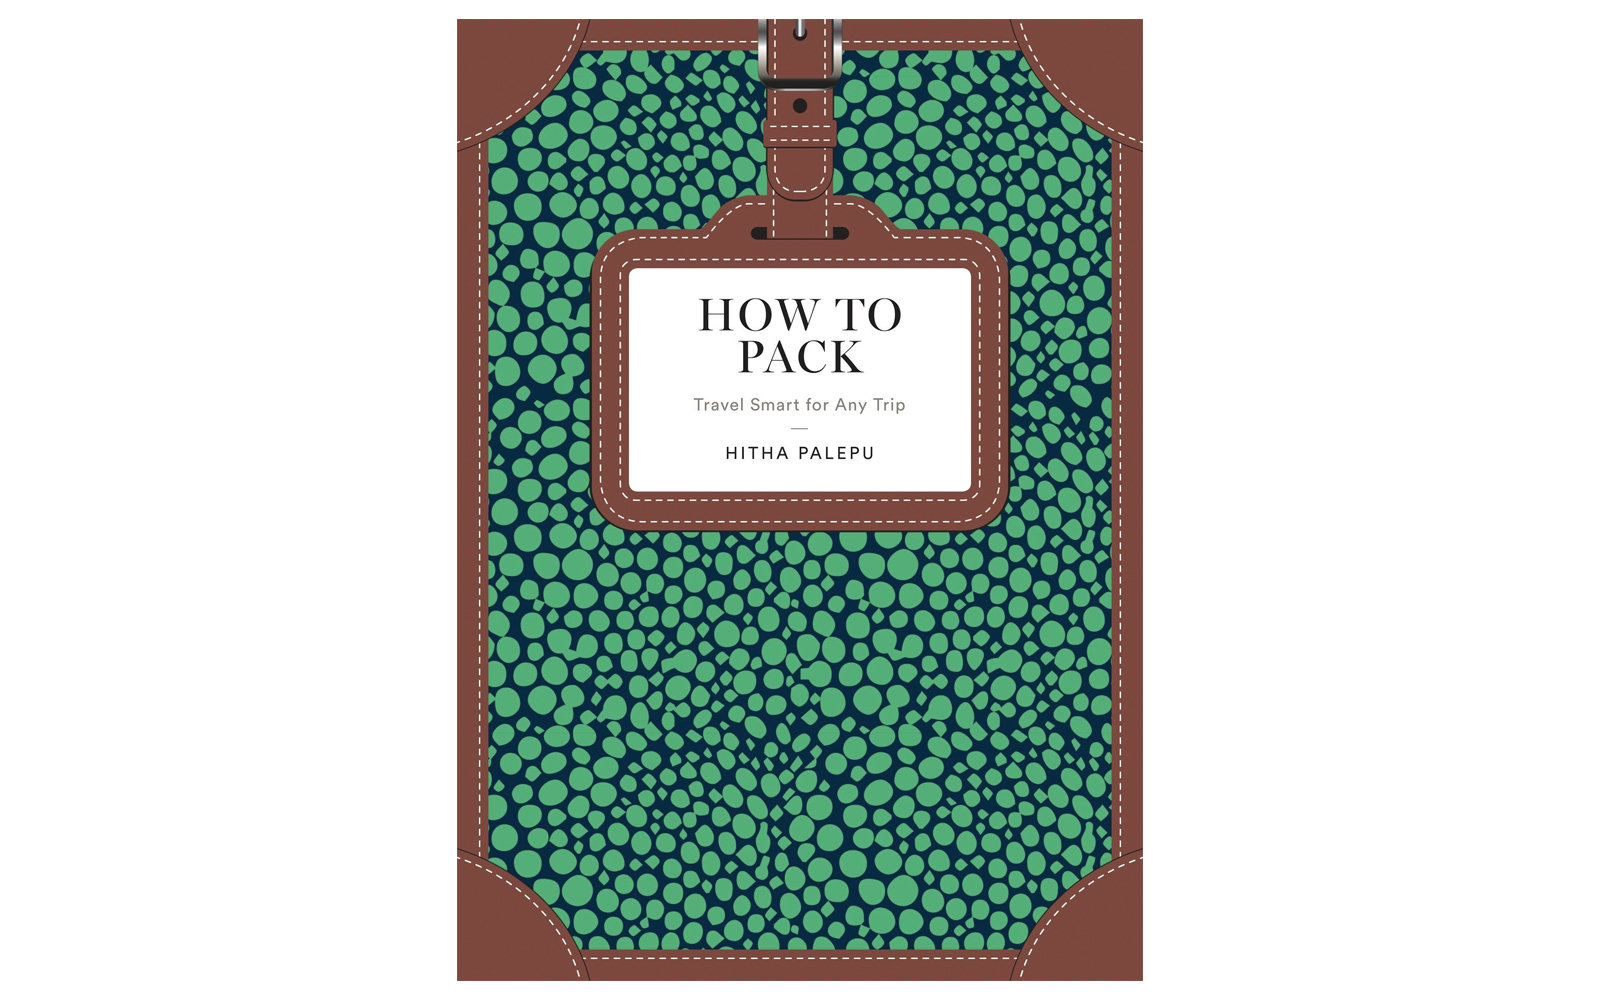 How to Pack: Travel Smart for Any Trip (How To Series) by Hitha Palepu